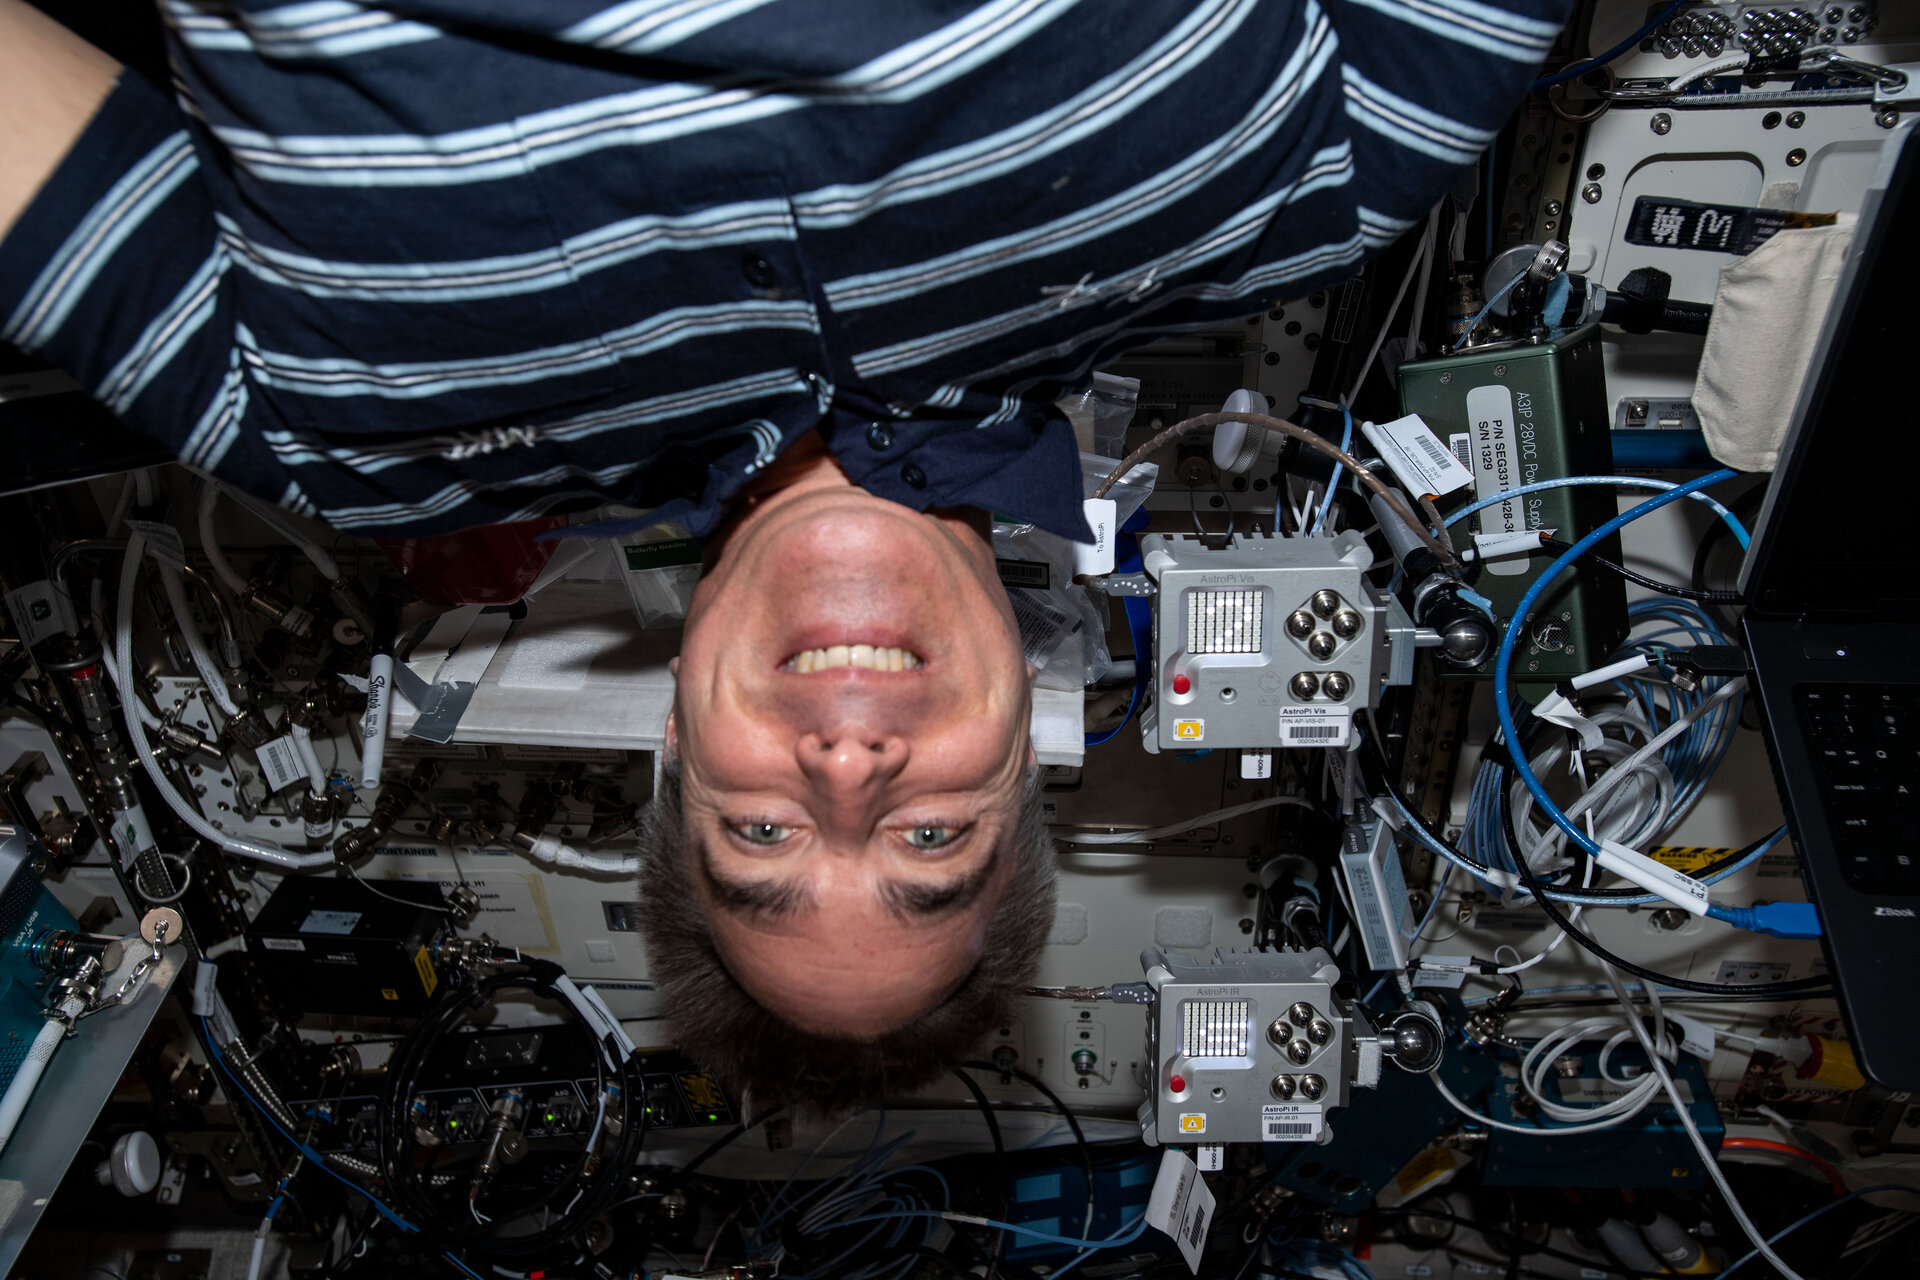 Astro Pi 2019/20: More than 6500 programs run on the ISS